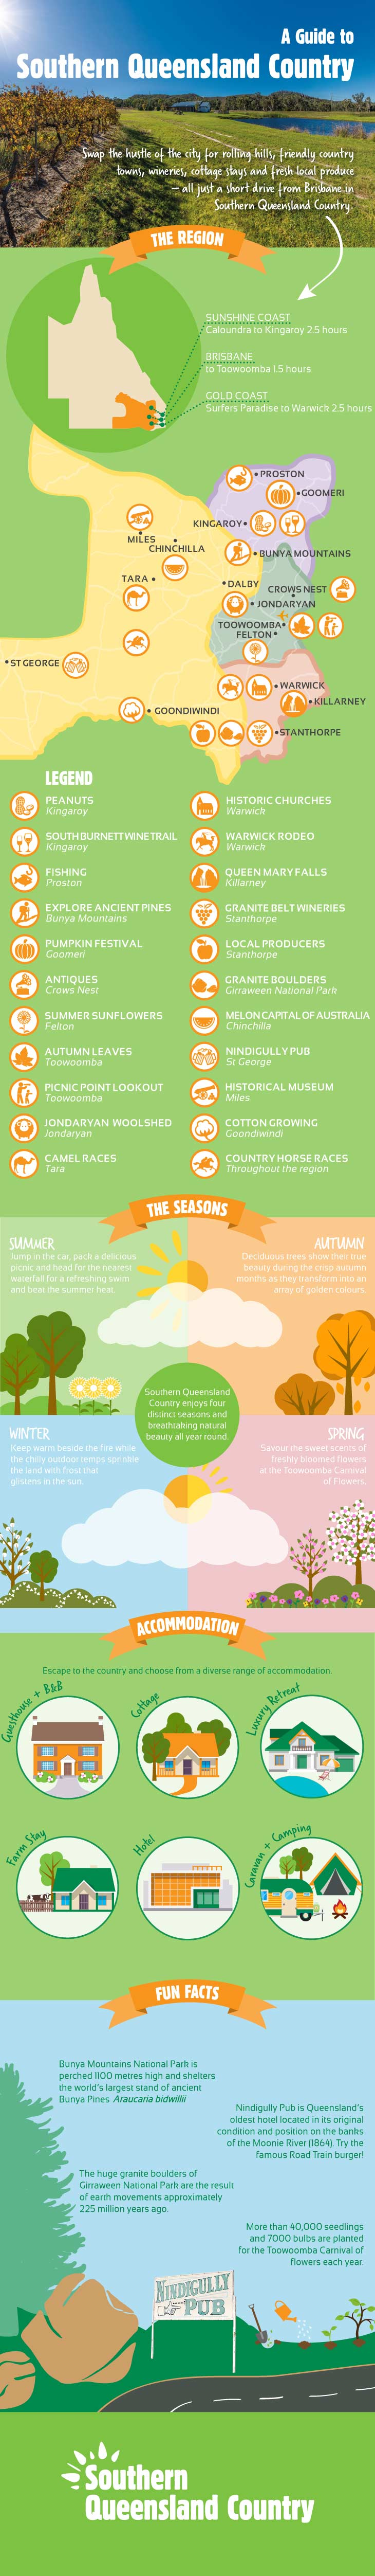 Southern Queensland Country Infographic